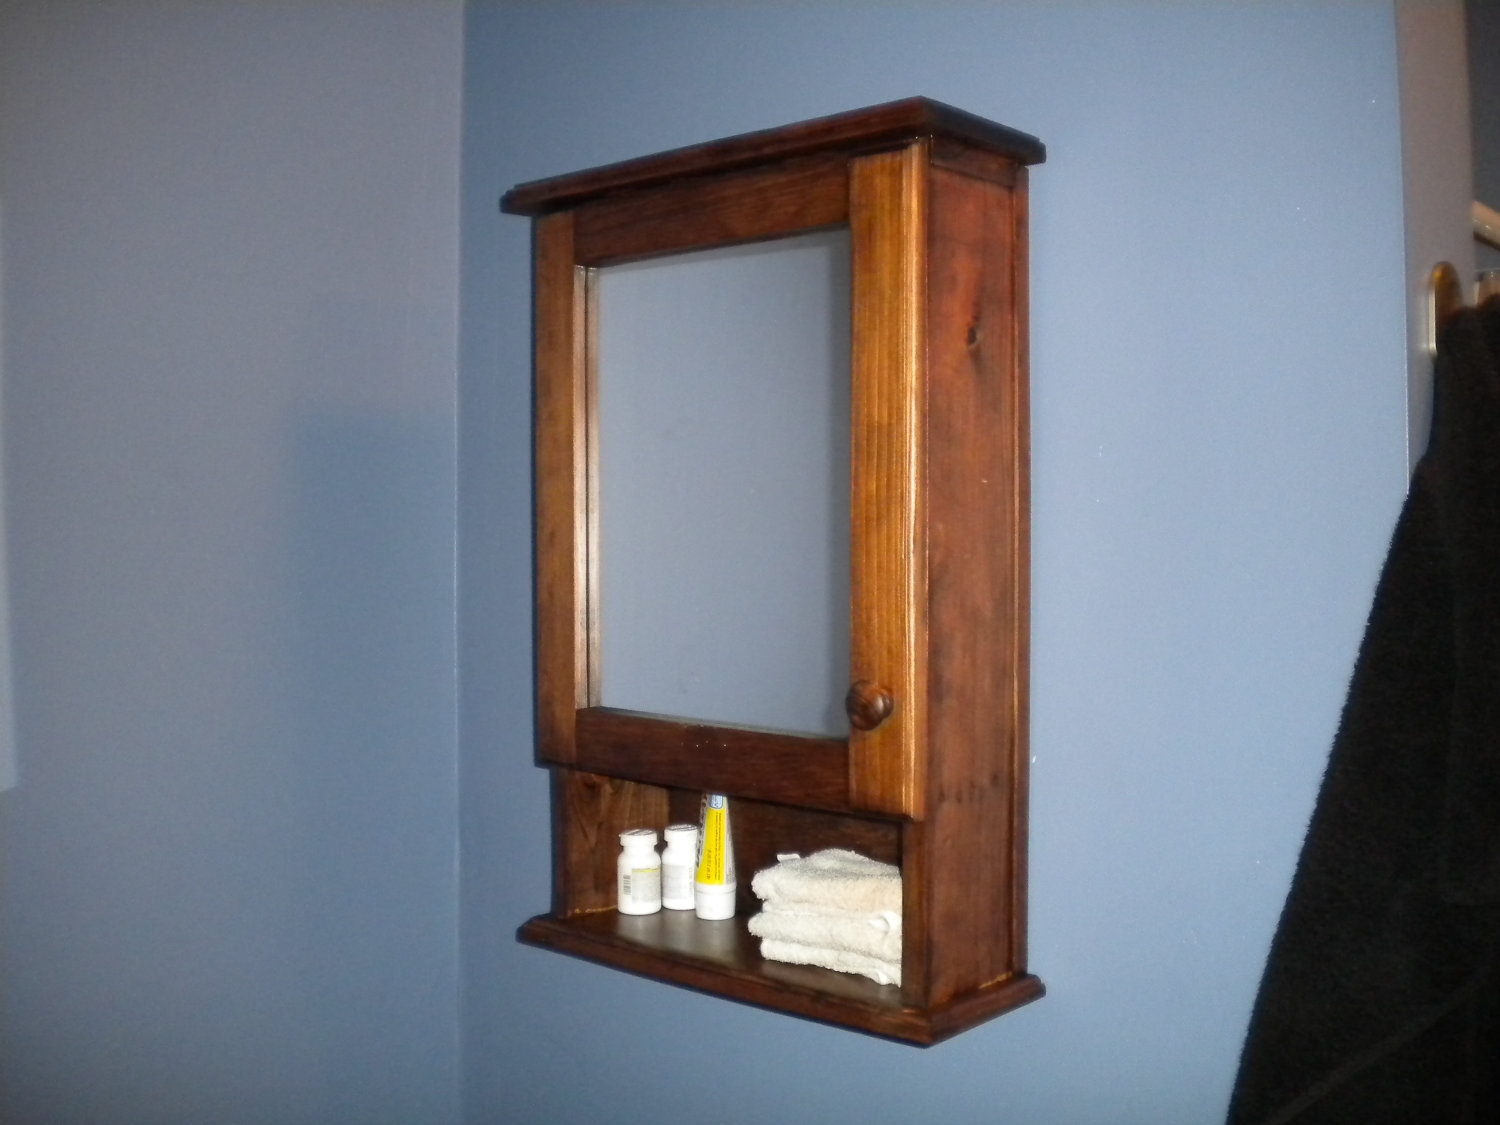 Unfinished Wood Medicine Cabinets For Bathroomsbathroom outstanding bathroom mirror with mirrored medicine